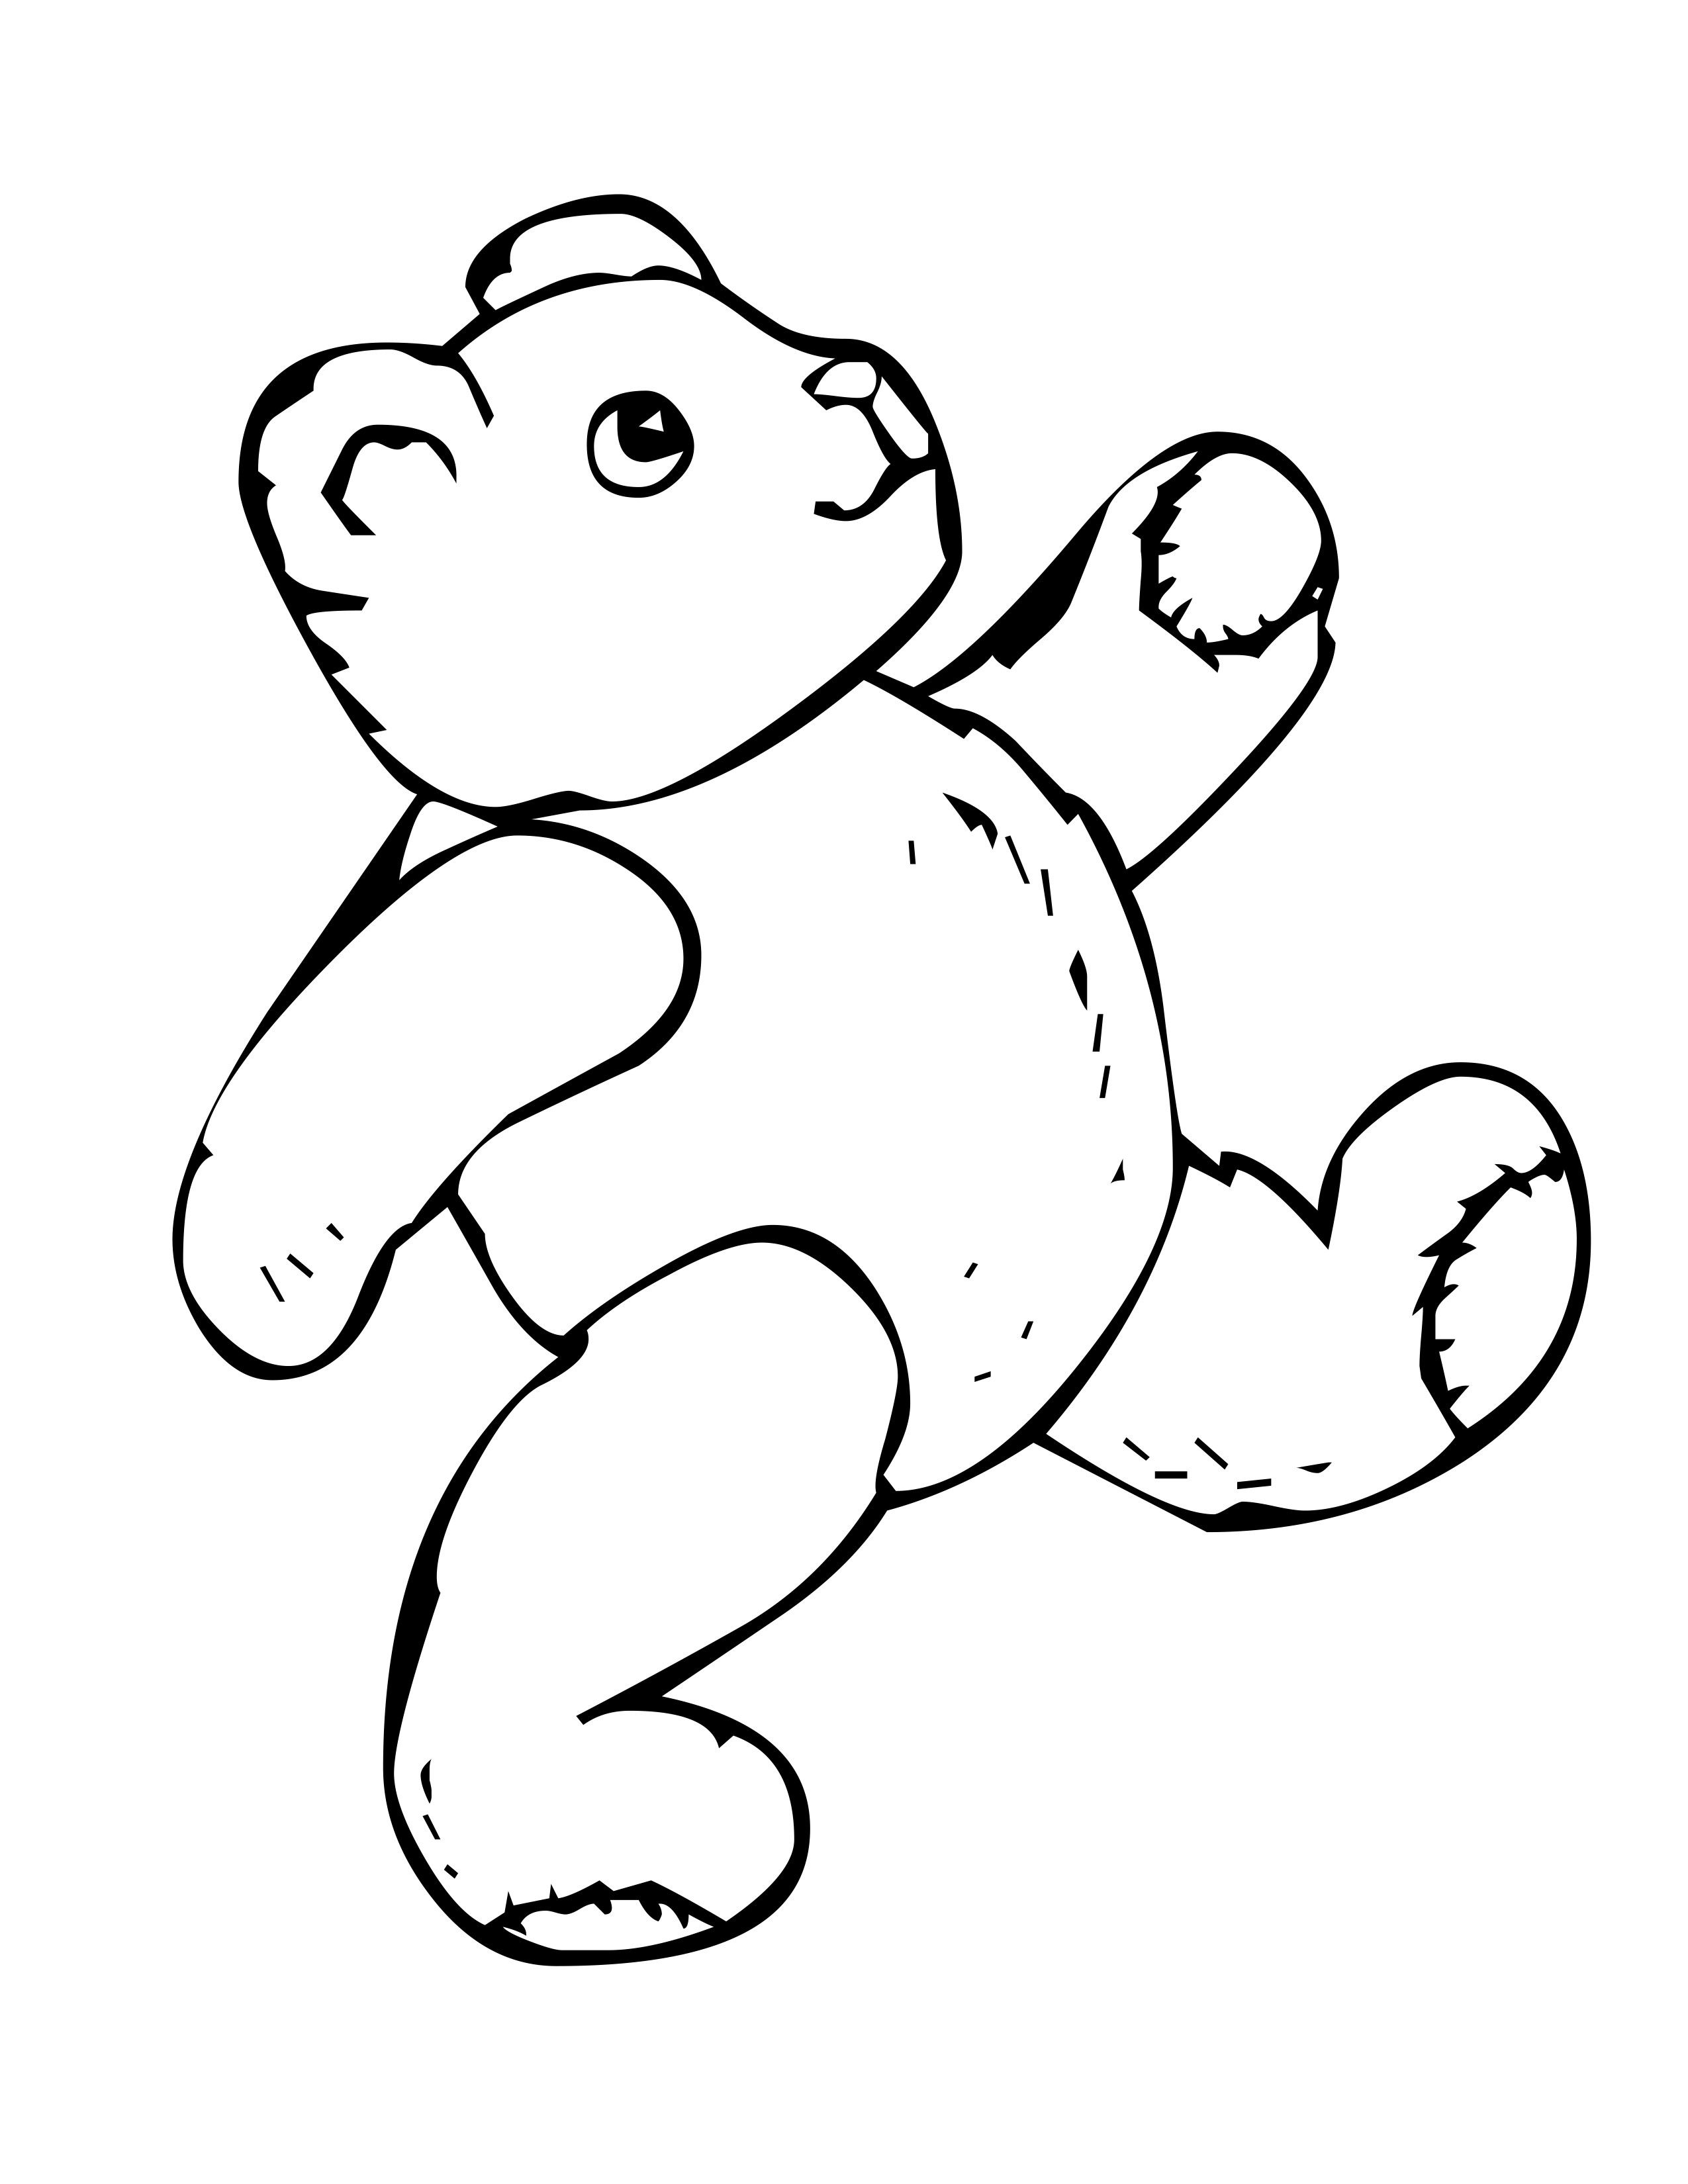 Related Teddy Bear Coloring Pages item7869, Teddy Bear